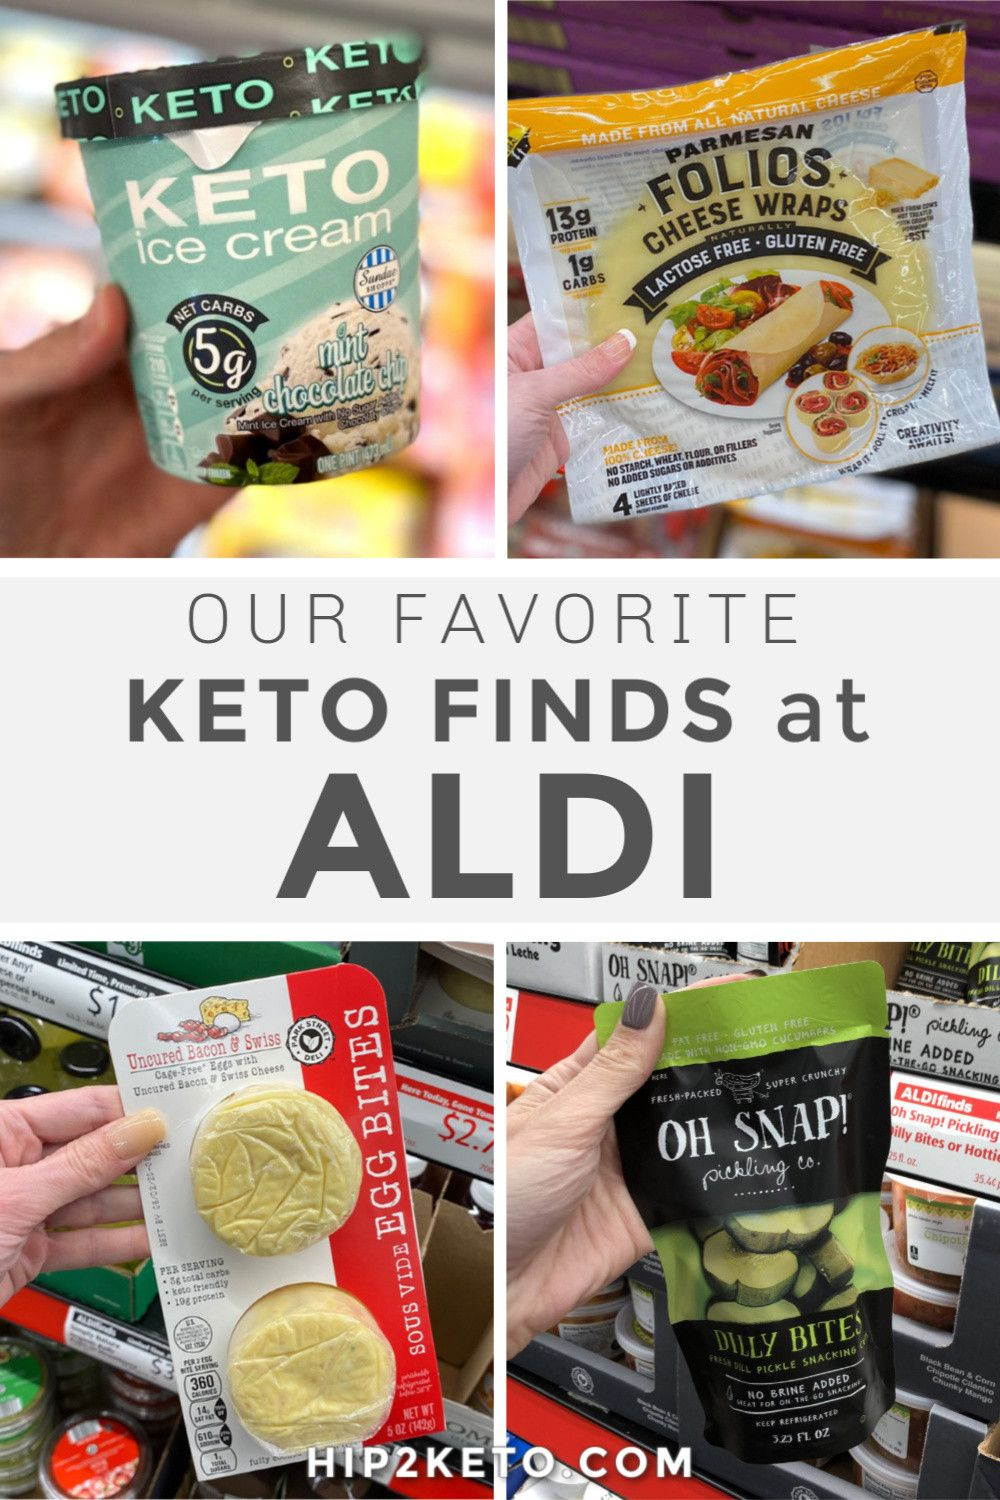 ALDI has been winning me over lately — the convenience of